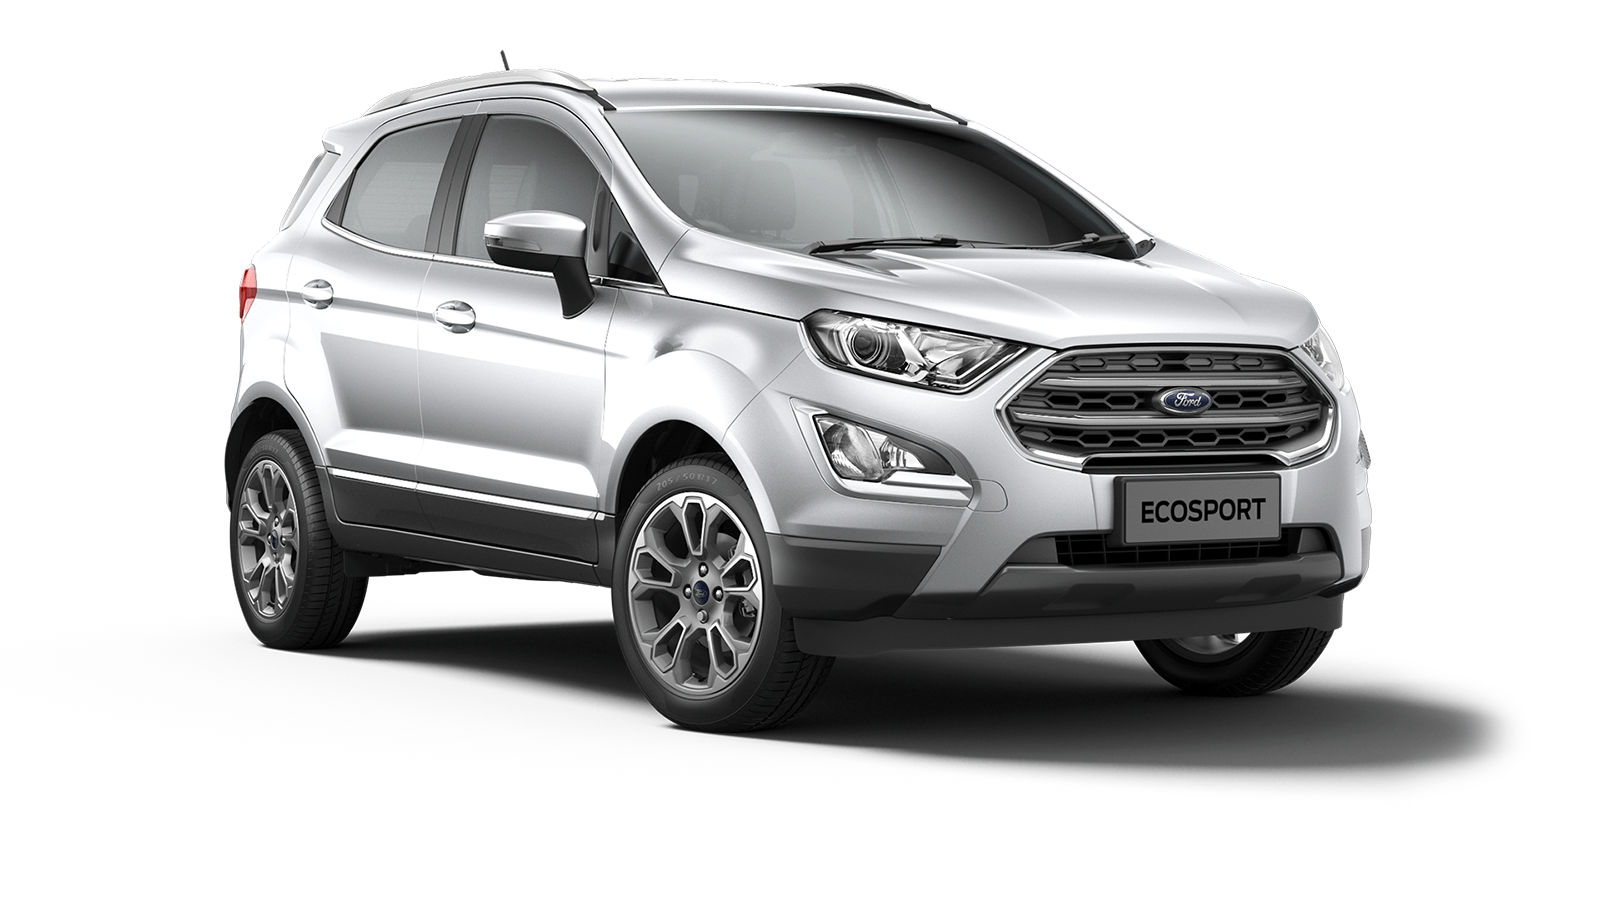 ECOSPORT Titanium 5 Door in Moondust Silver